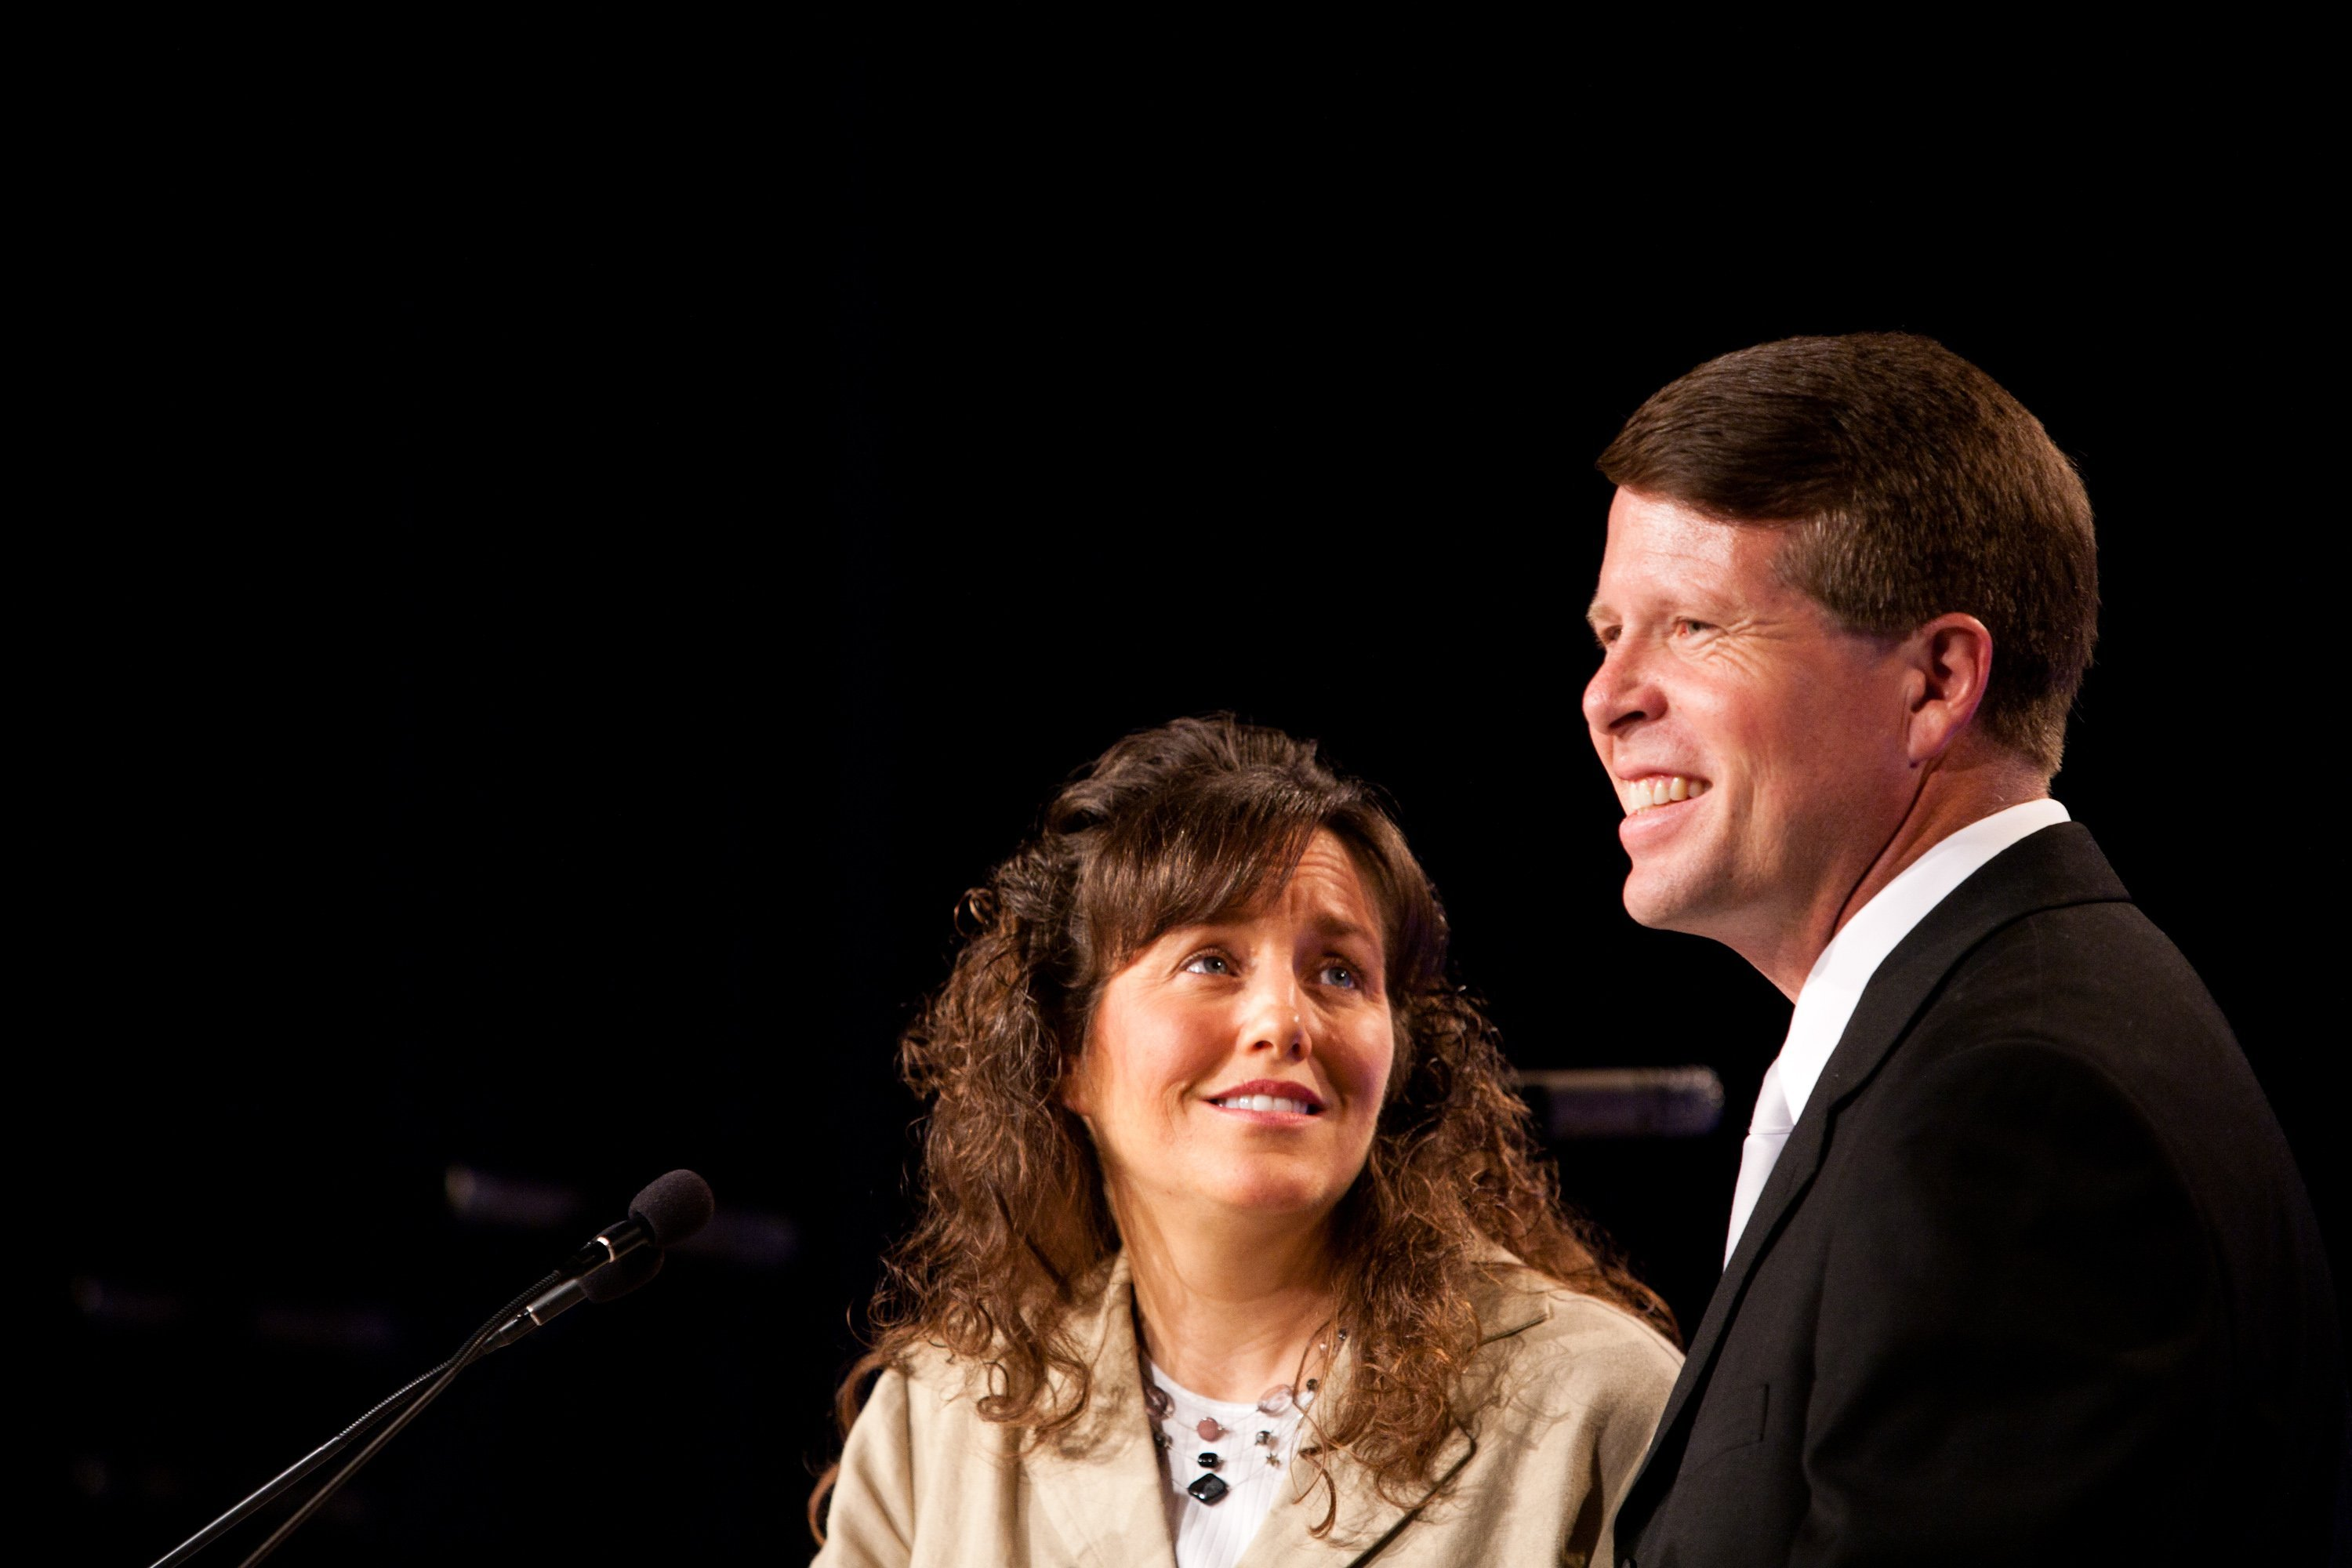 Michelle Duggar and Jim Bob Duggar at the Values Voter Summit on September 17, 2010 in Washington, DC. | Photo: GettyImages